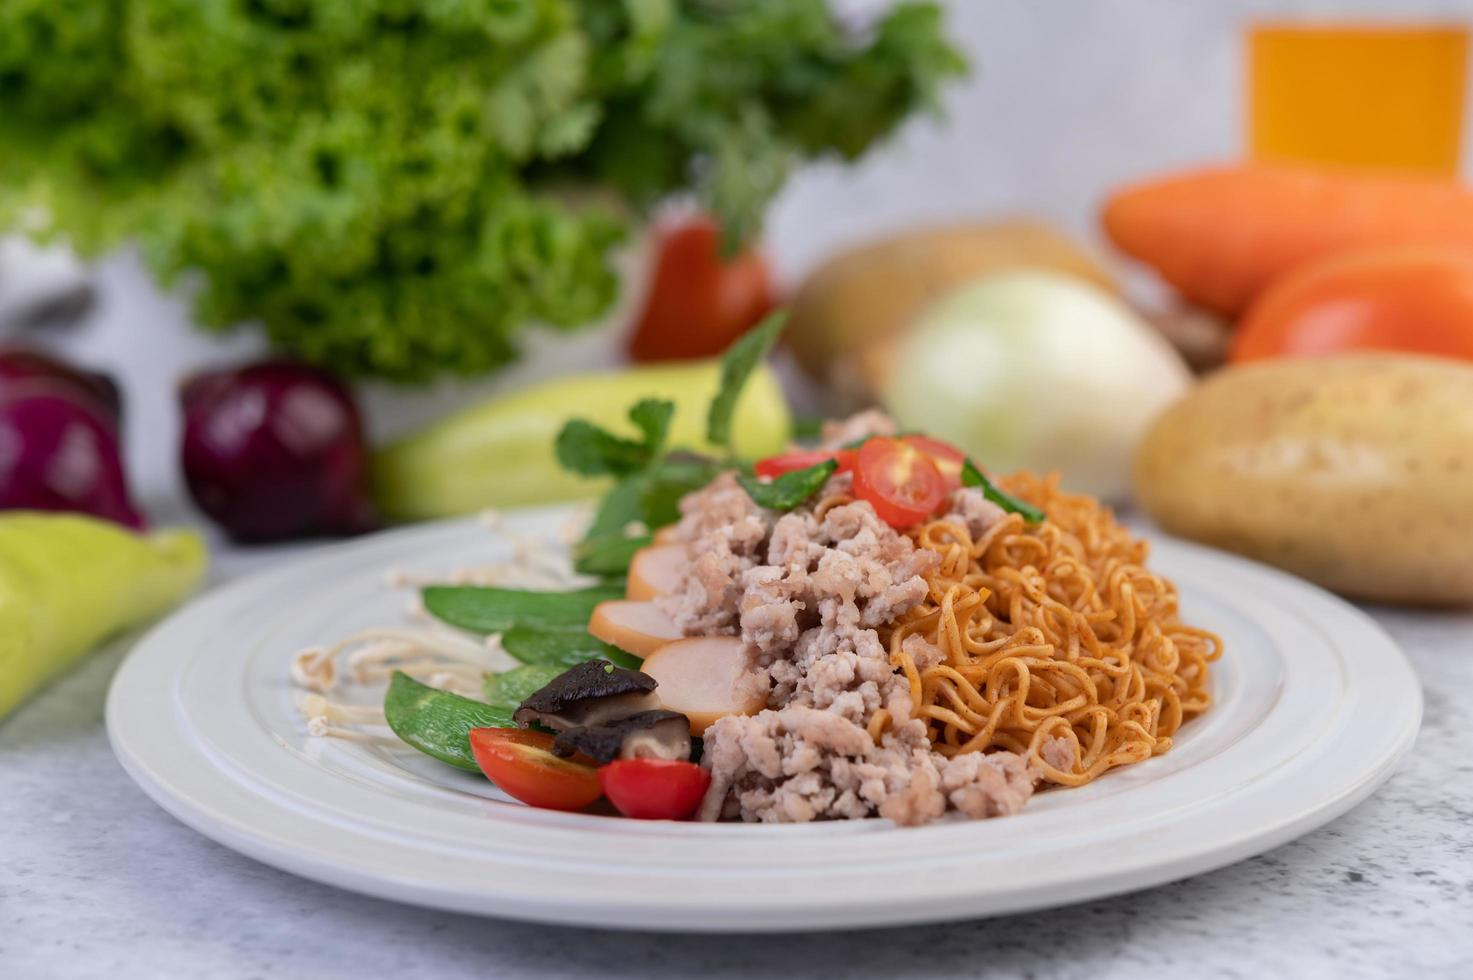 Stir-fried noodles with mixed vegetables photo